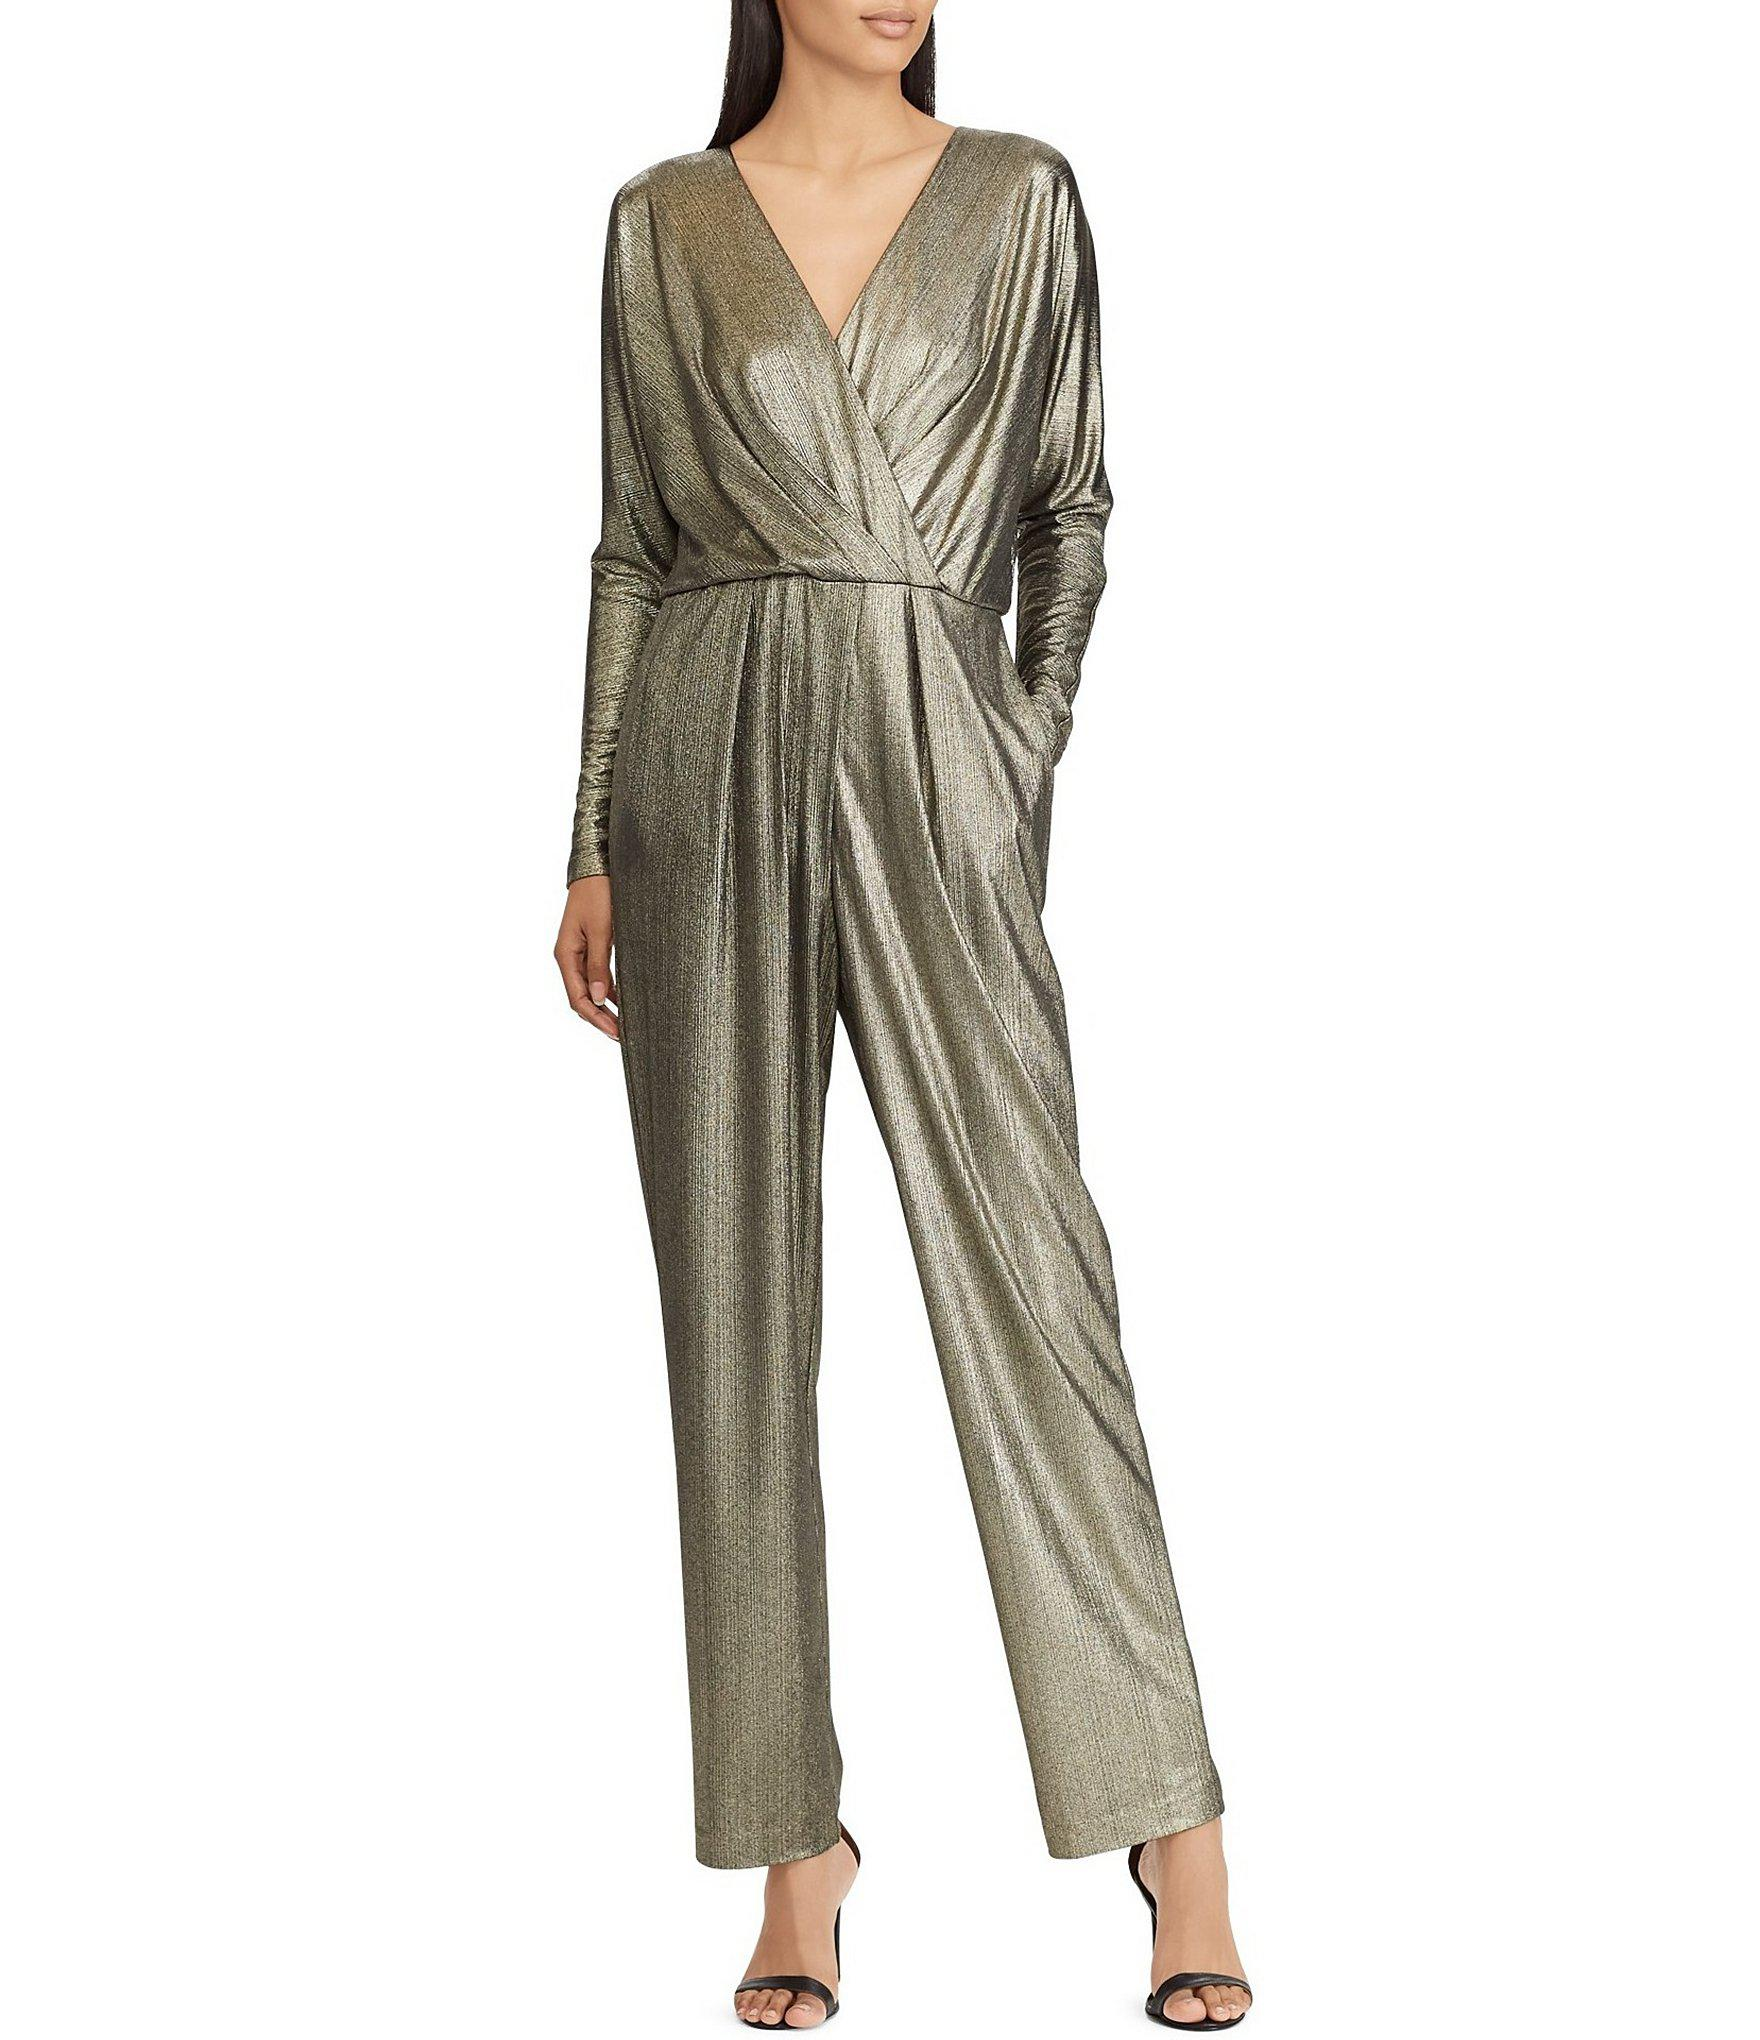 d46571900a0 Lauren by Ralph Lauren Metallic Knit Surplice V-neck Jumpsuit - Lyst